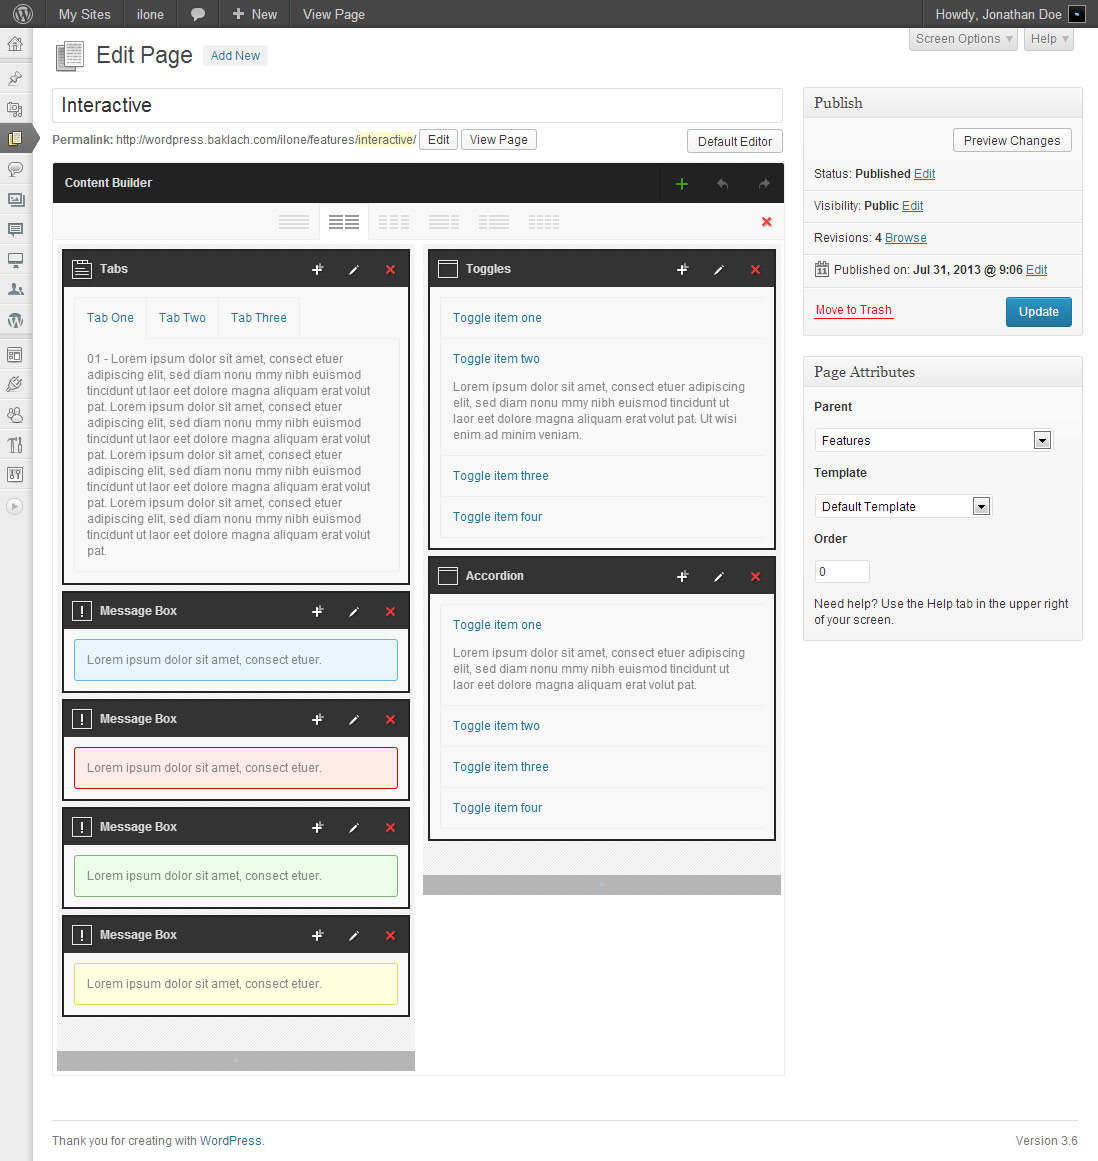 Ilone - One Page WordPress Theme - Screenshot 1. Admin screen of a sample page built with Content Builder.